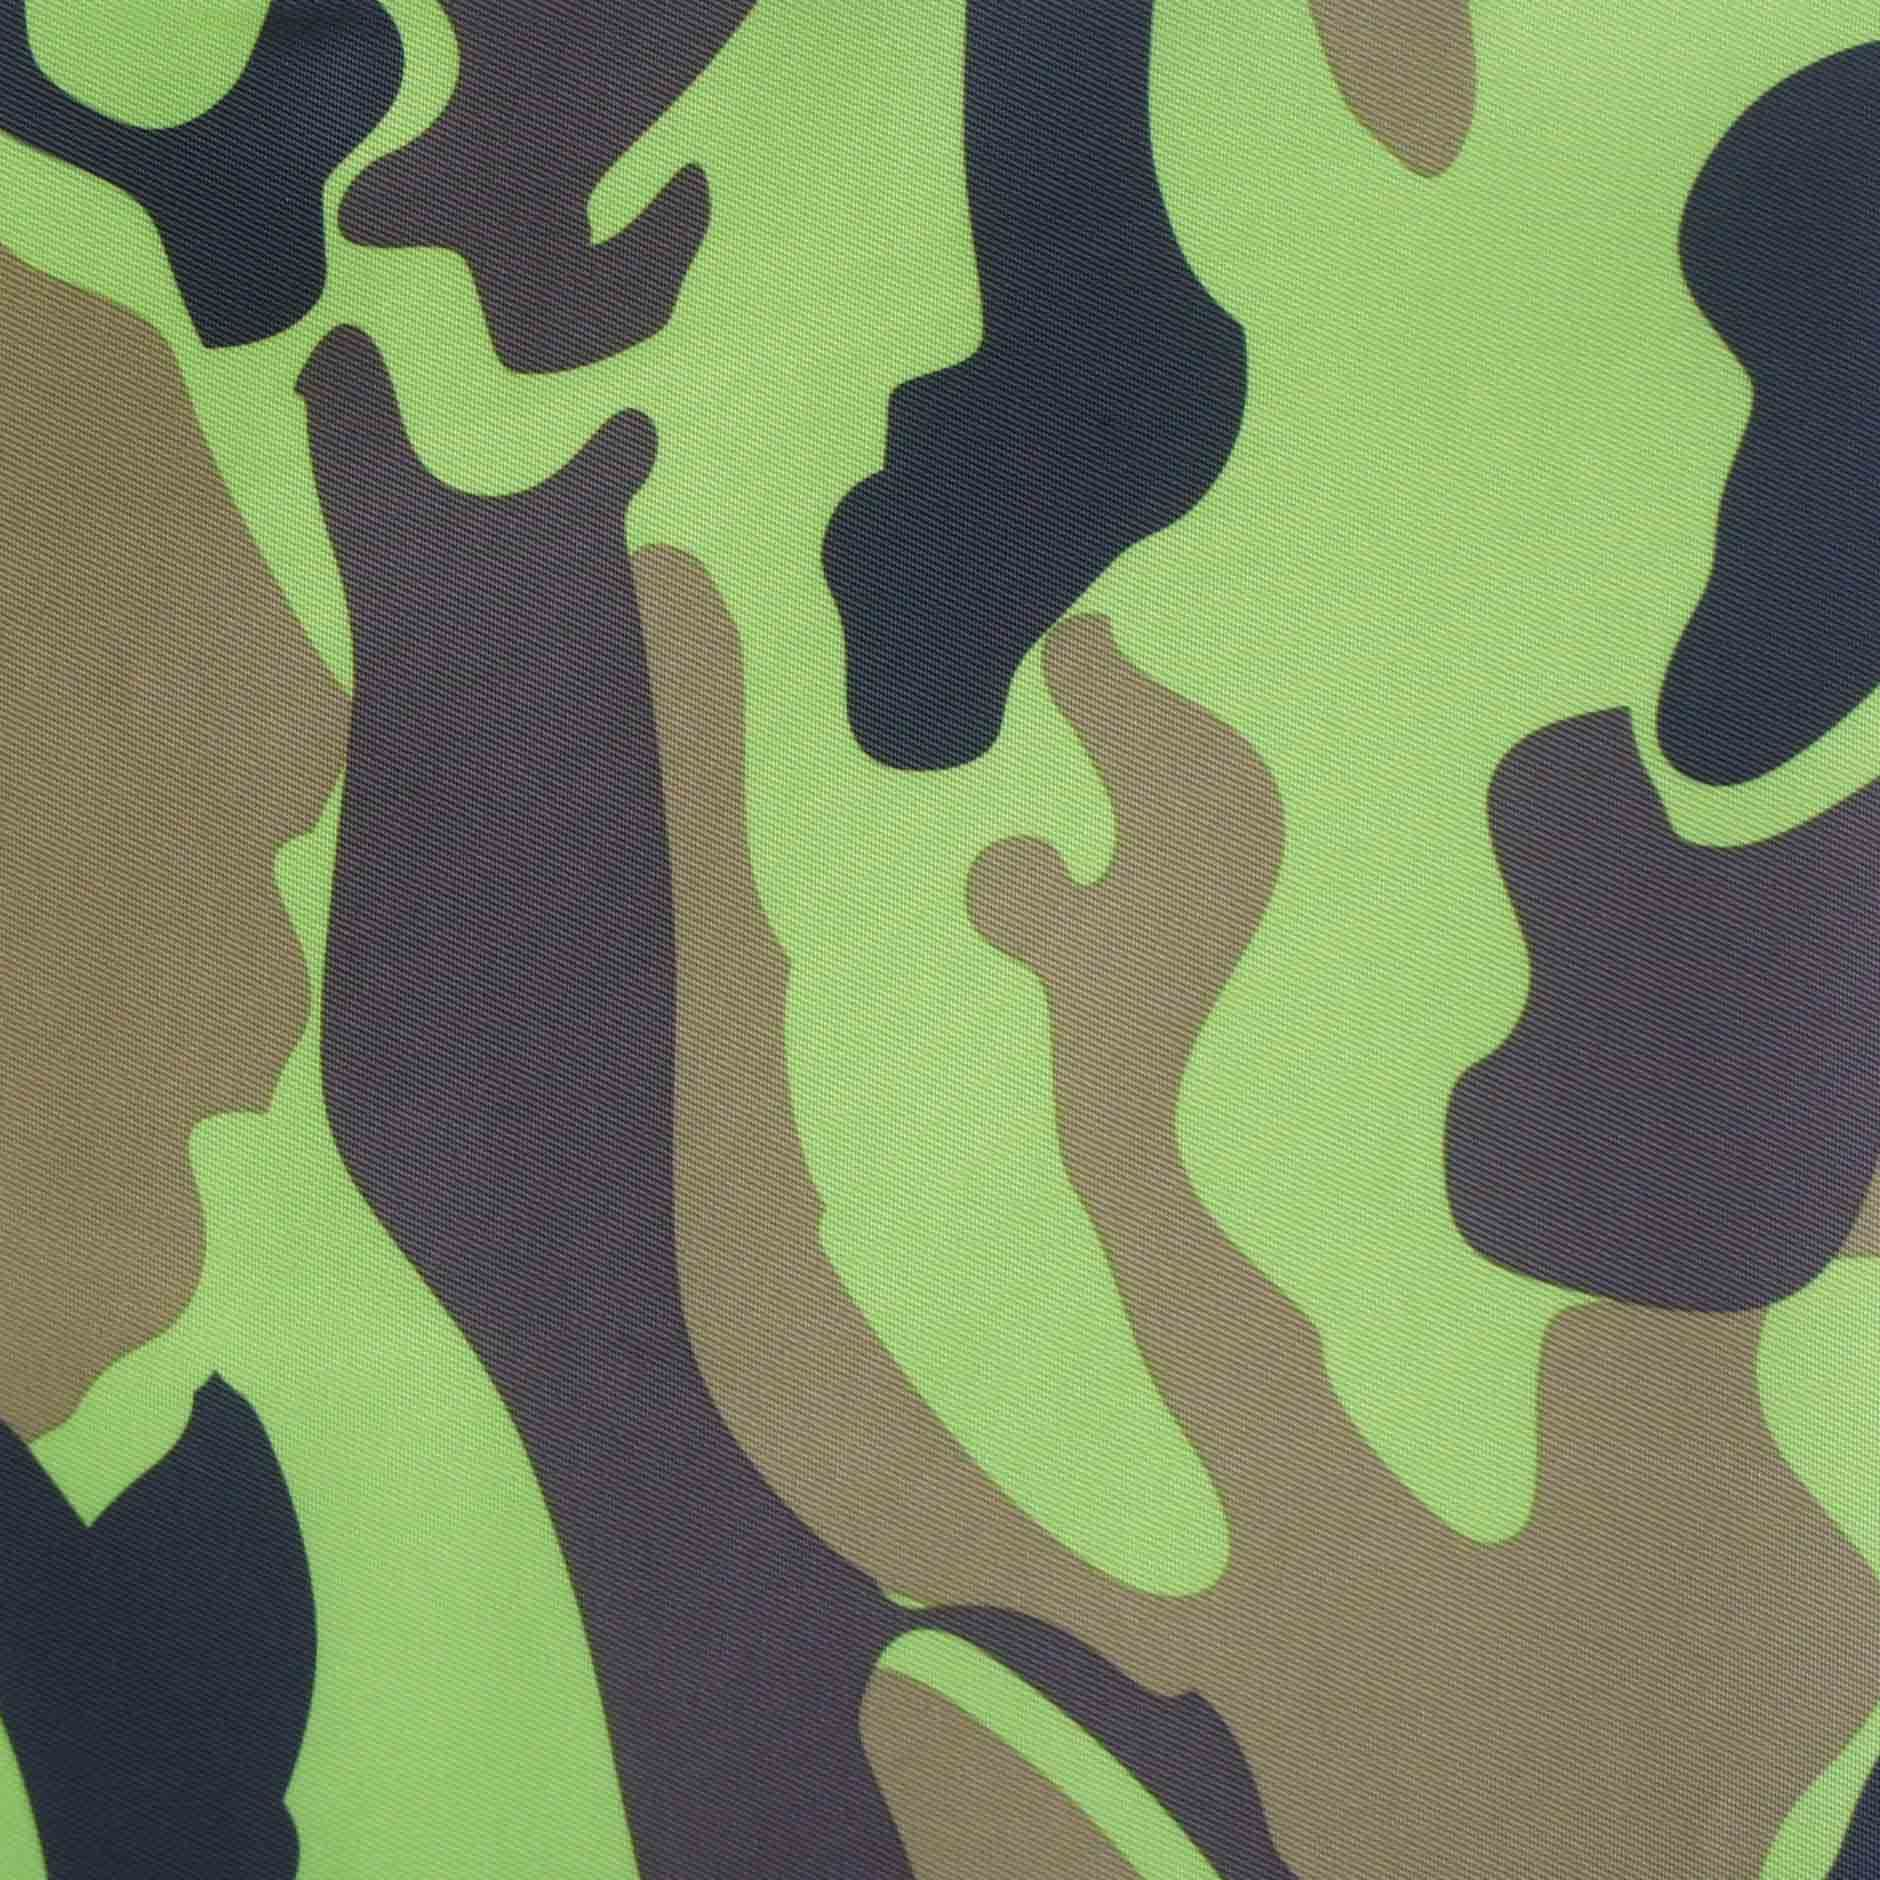 Polyester 600d Oxford Printing Camouflage Fabric for Military